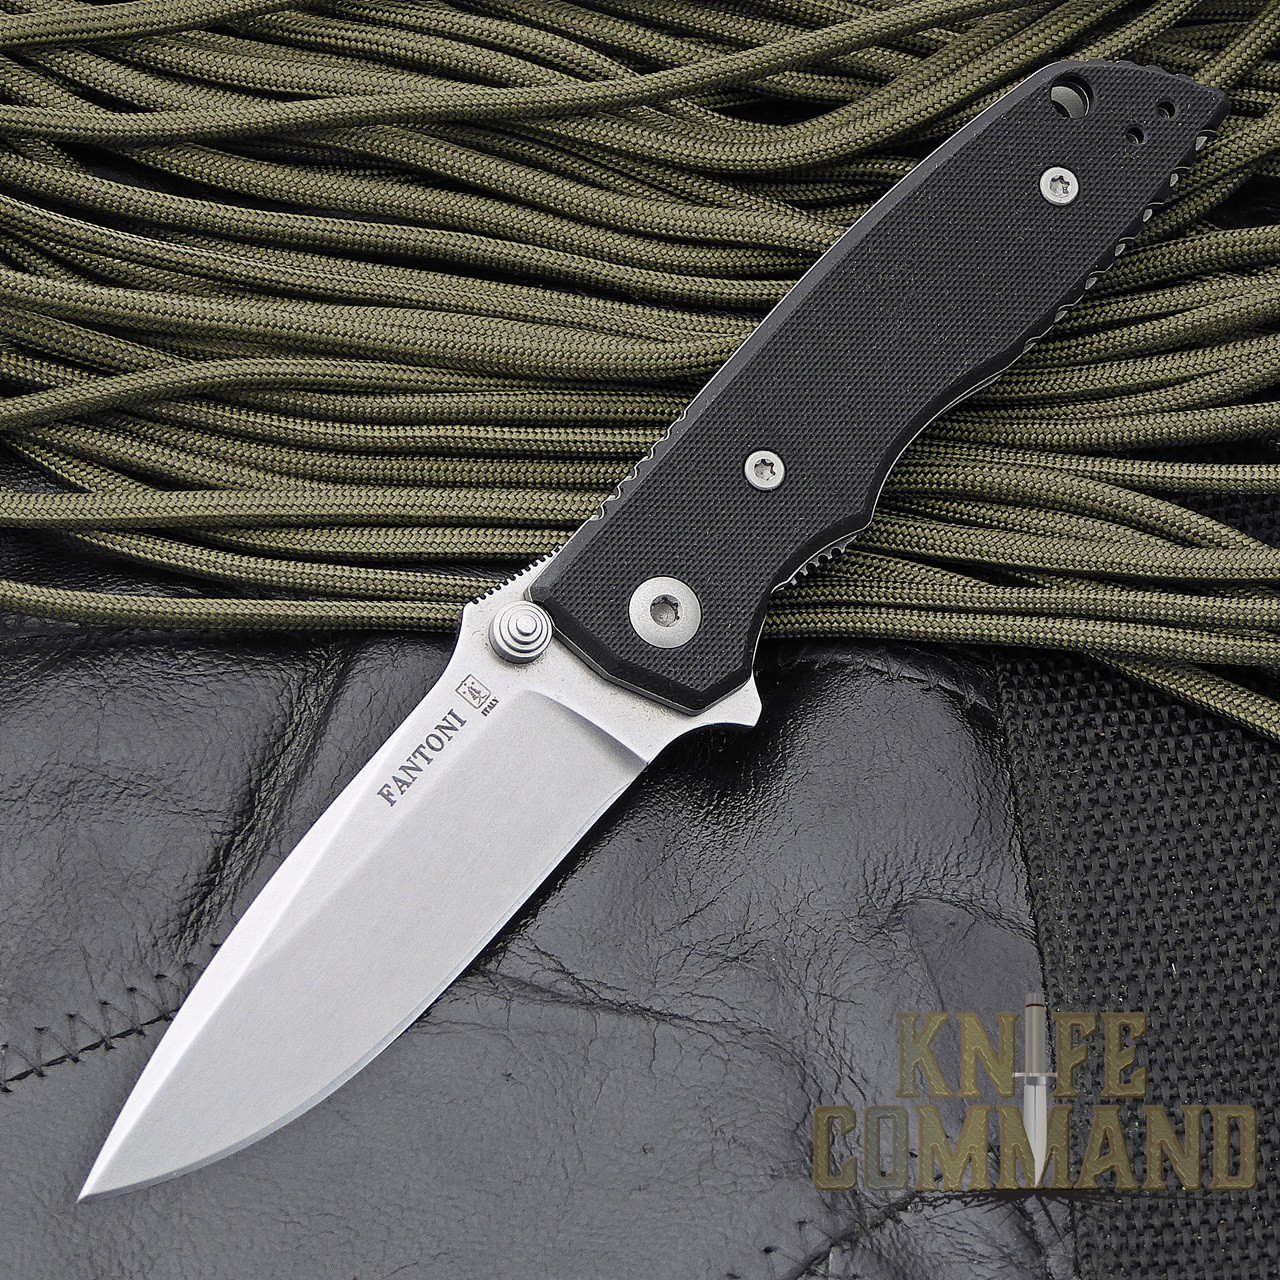 Fantoni HB 02 Black William Harsey Combat Folder Tactical Knife.  Small version of HB 01 Combat Folder.